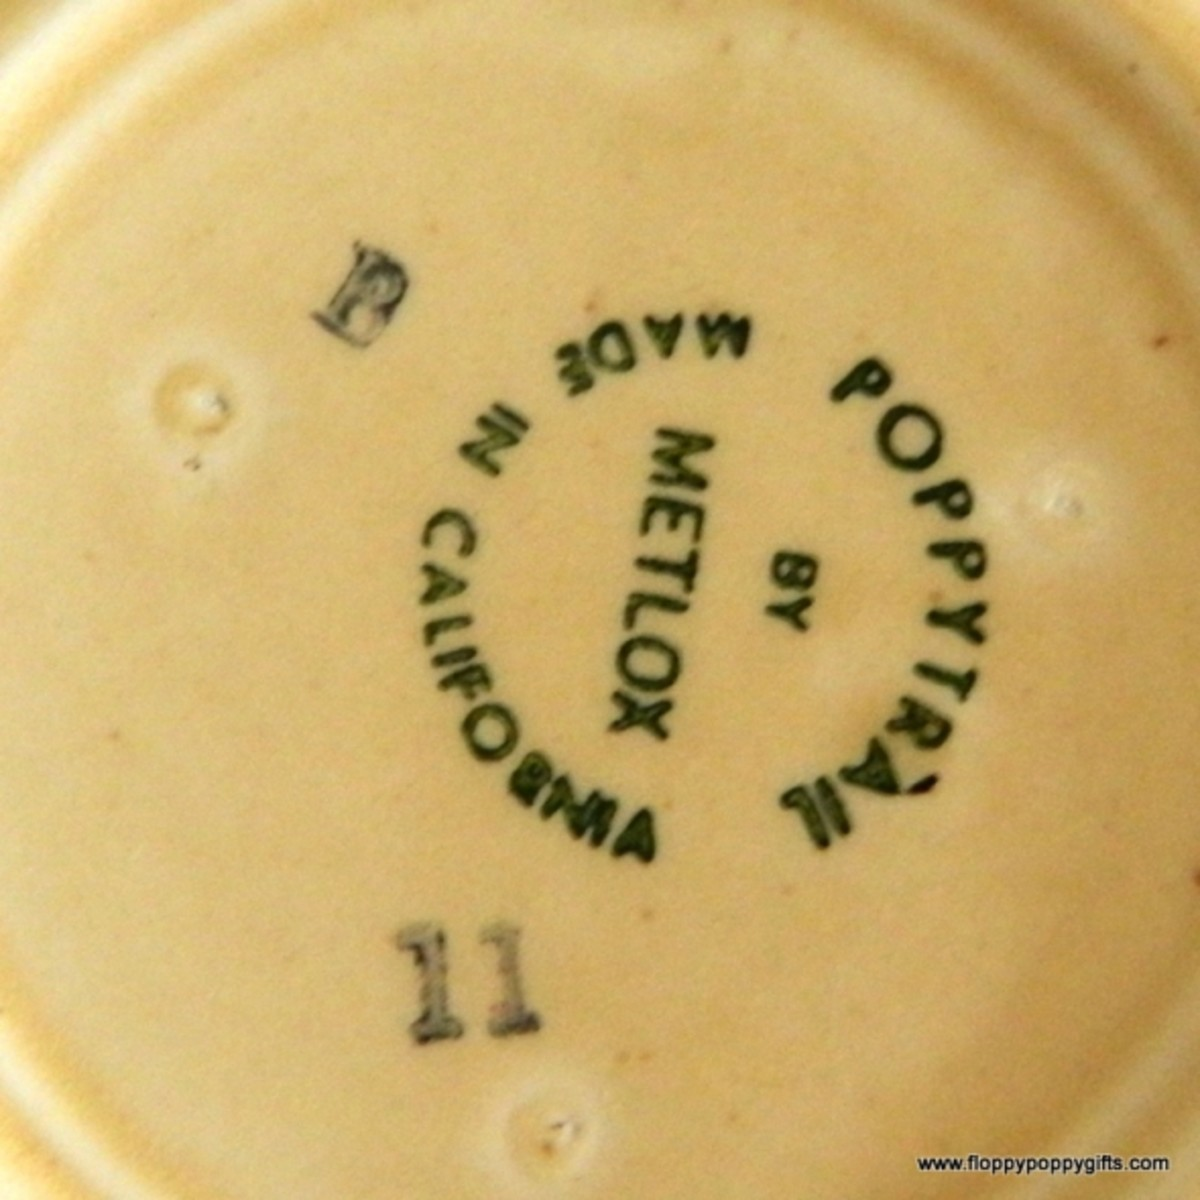 Another stamp on the underside of the creamer.